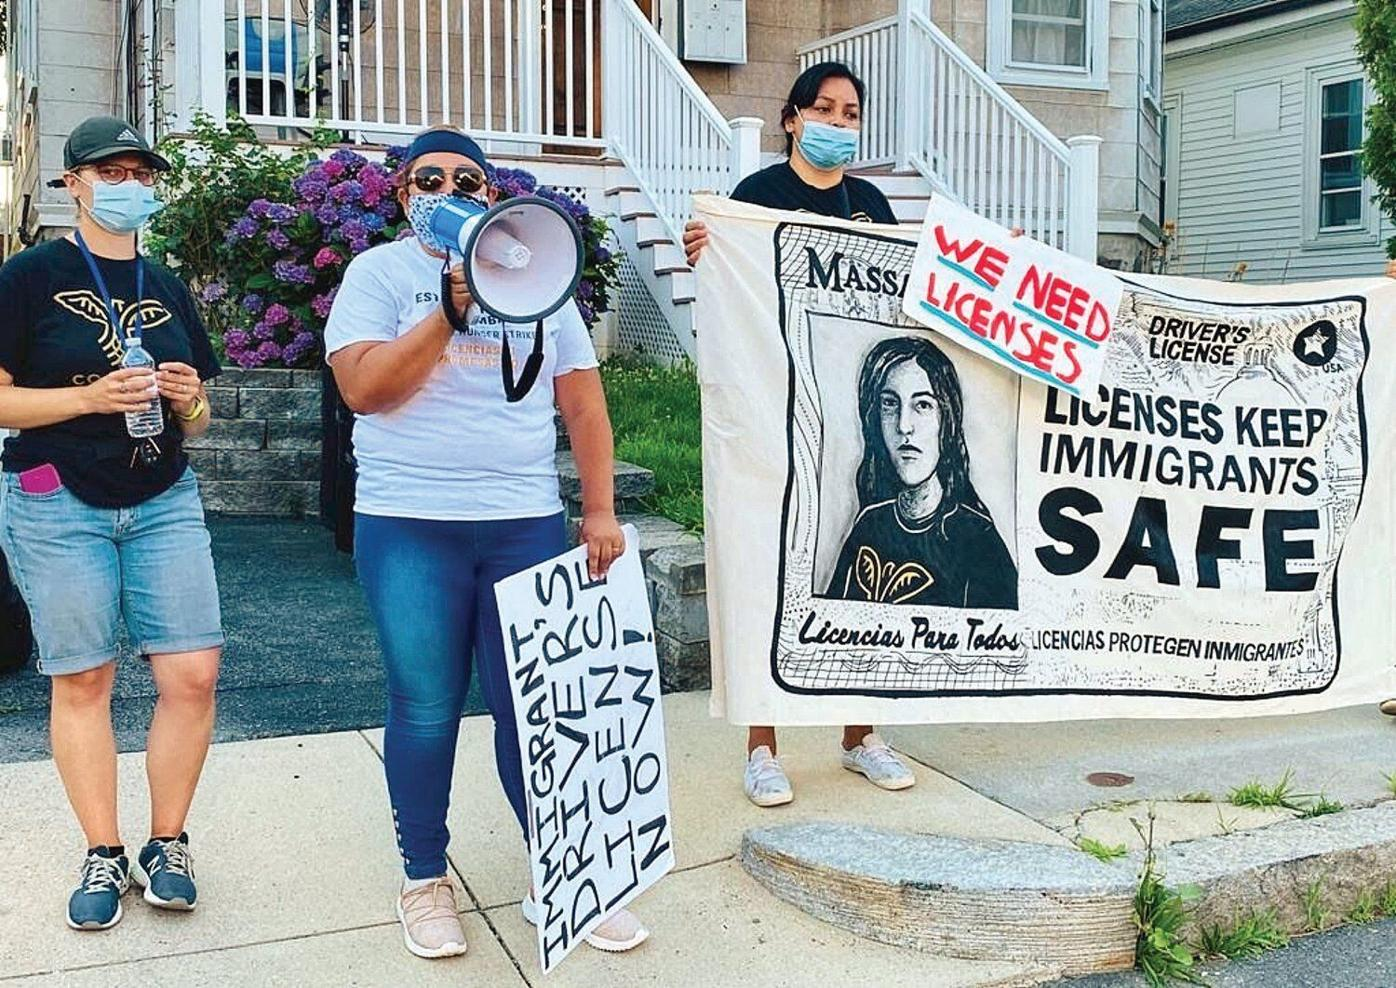 Immigrant driver's license bill sought by Rep. Farley-Bouvier stalls in House (copy)